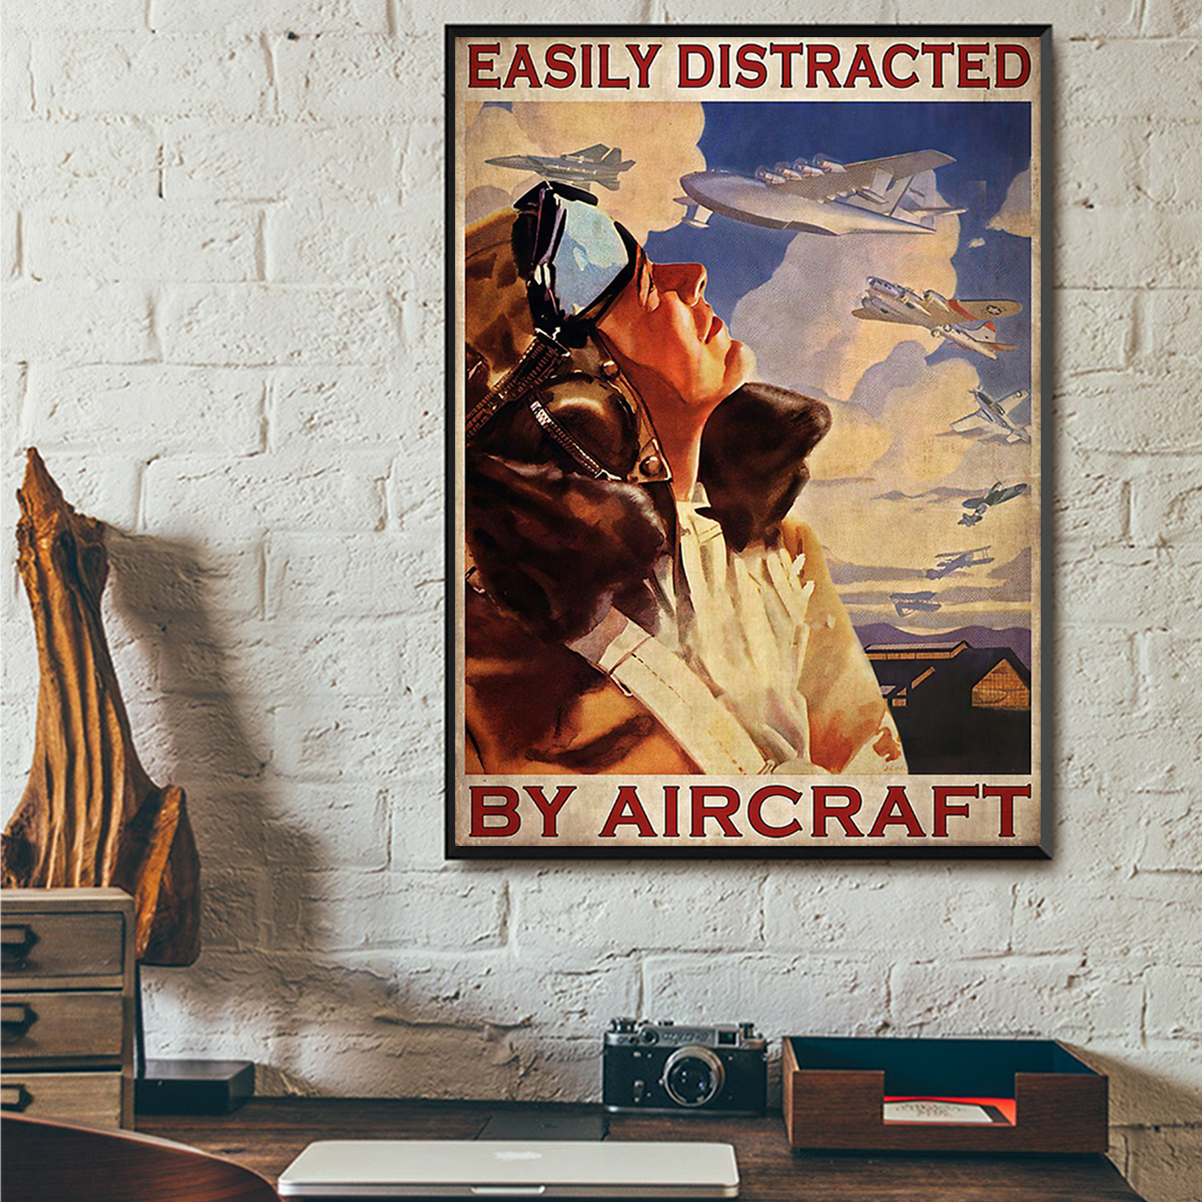 Easily distracted by aircraft poster A3